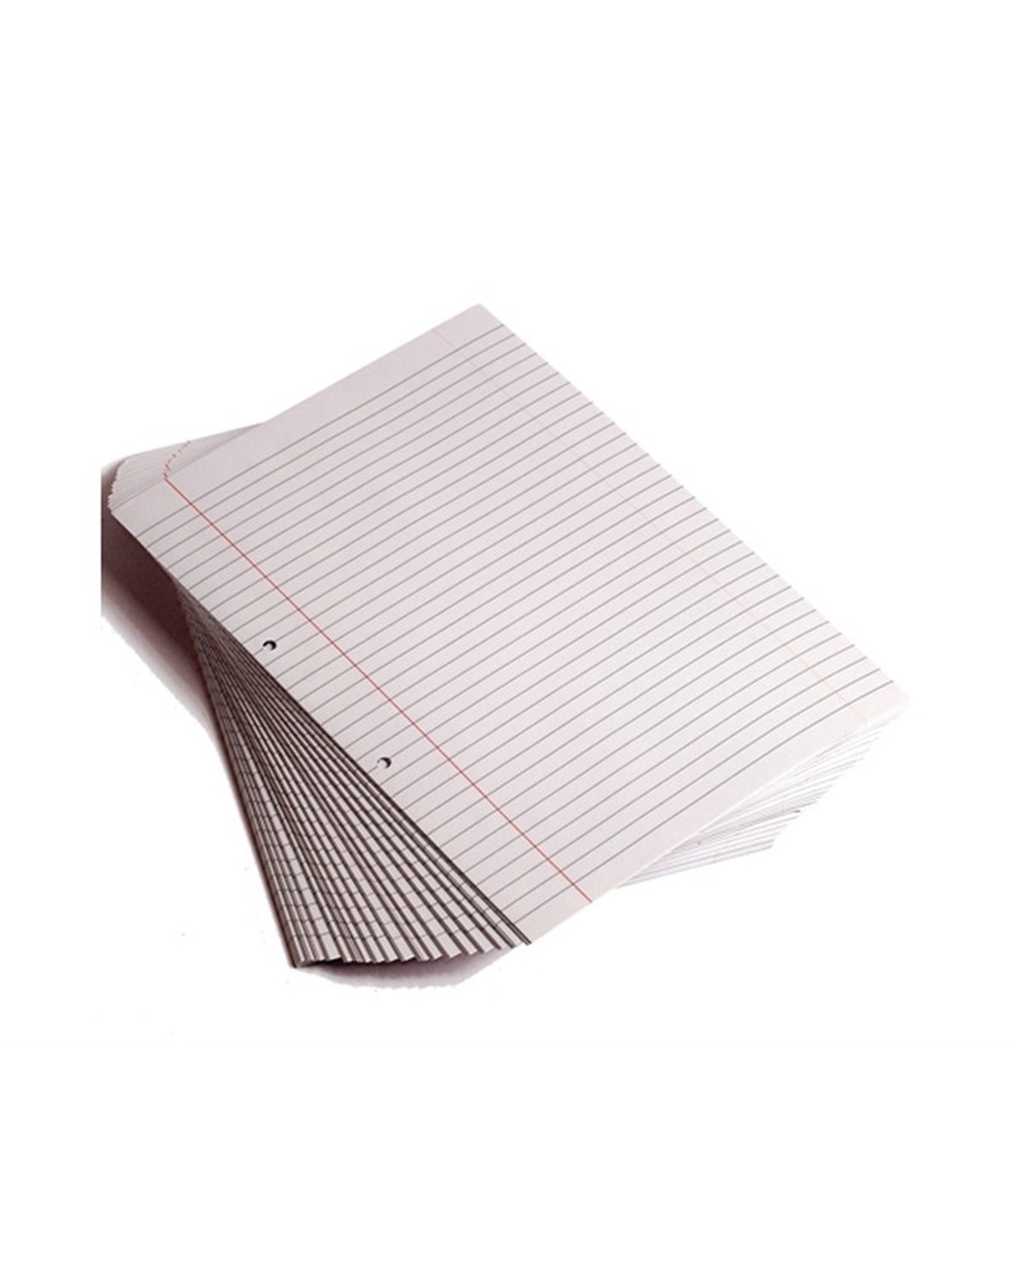 9 x 7 inch Exercise Paper Punched, 8mm Ruled & Margin